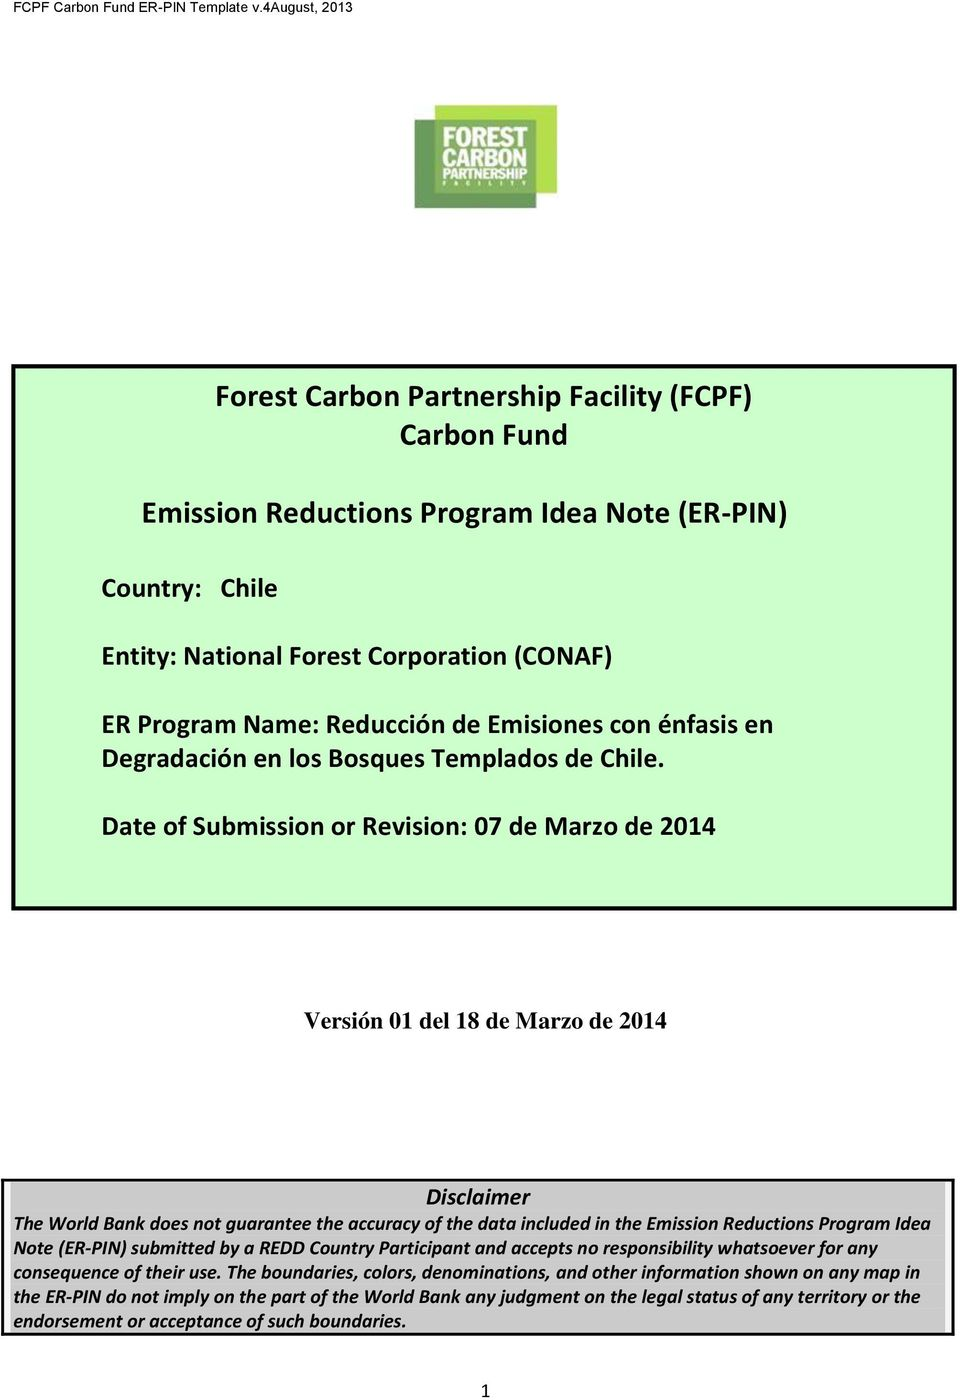 Date of Submission or Revision: 07 de Marzo de 2014 Versión 01 del 18 de Marzo de 2014 Disclaimer The World Bank does not guarantee the accuracy of the data included in the Emission Reductions